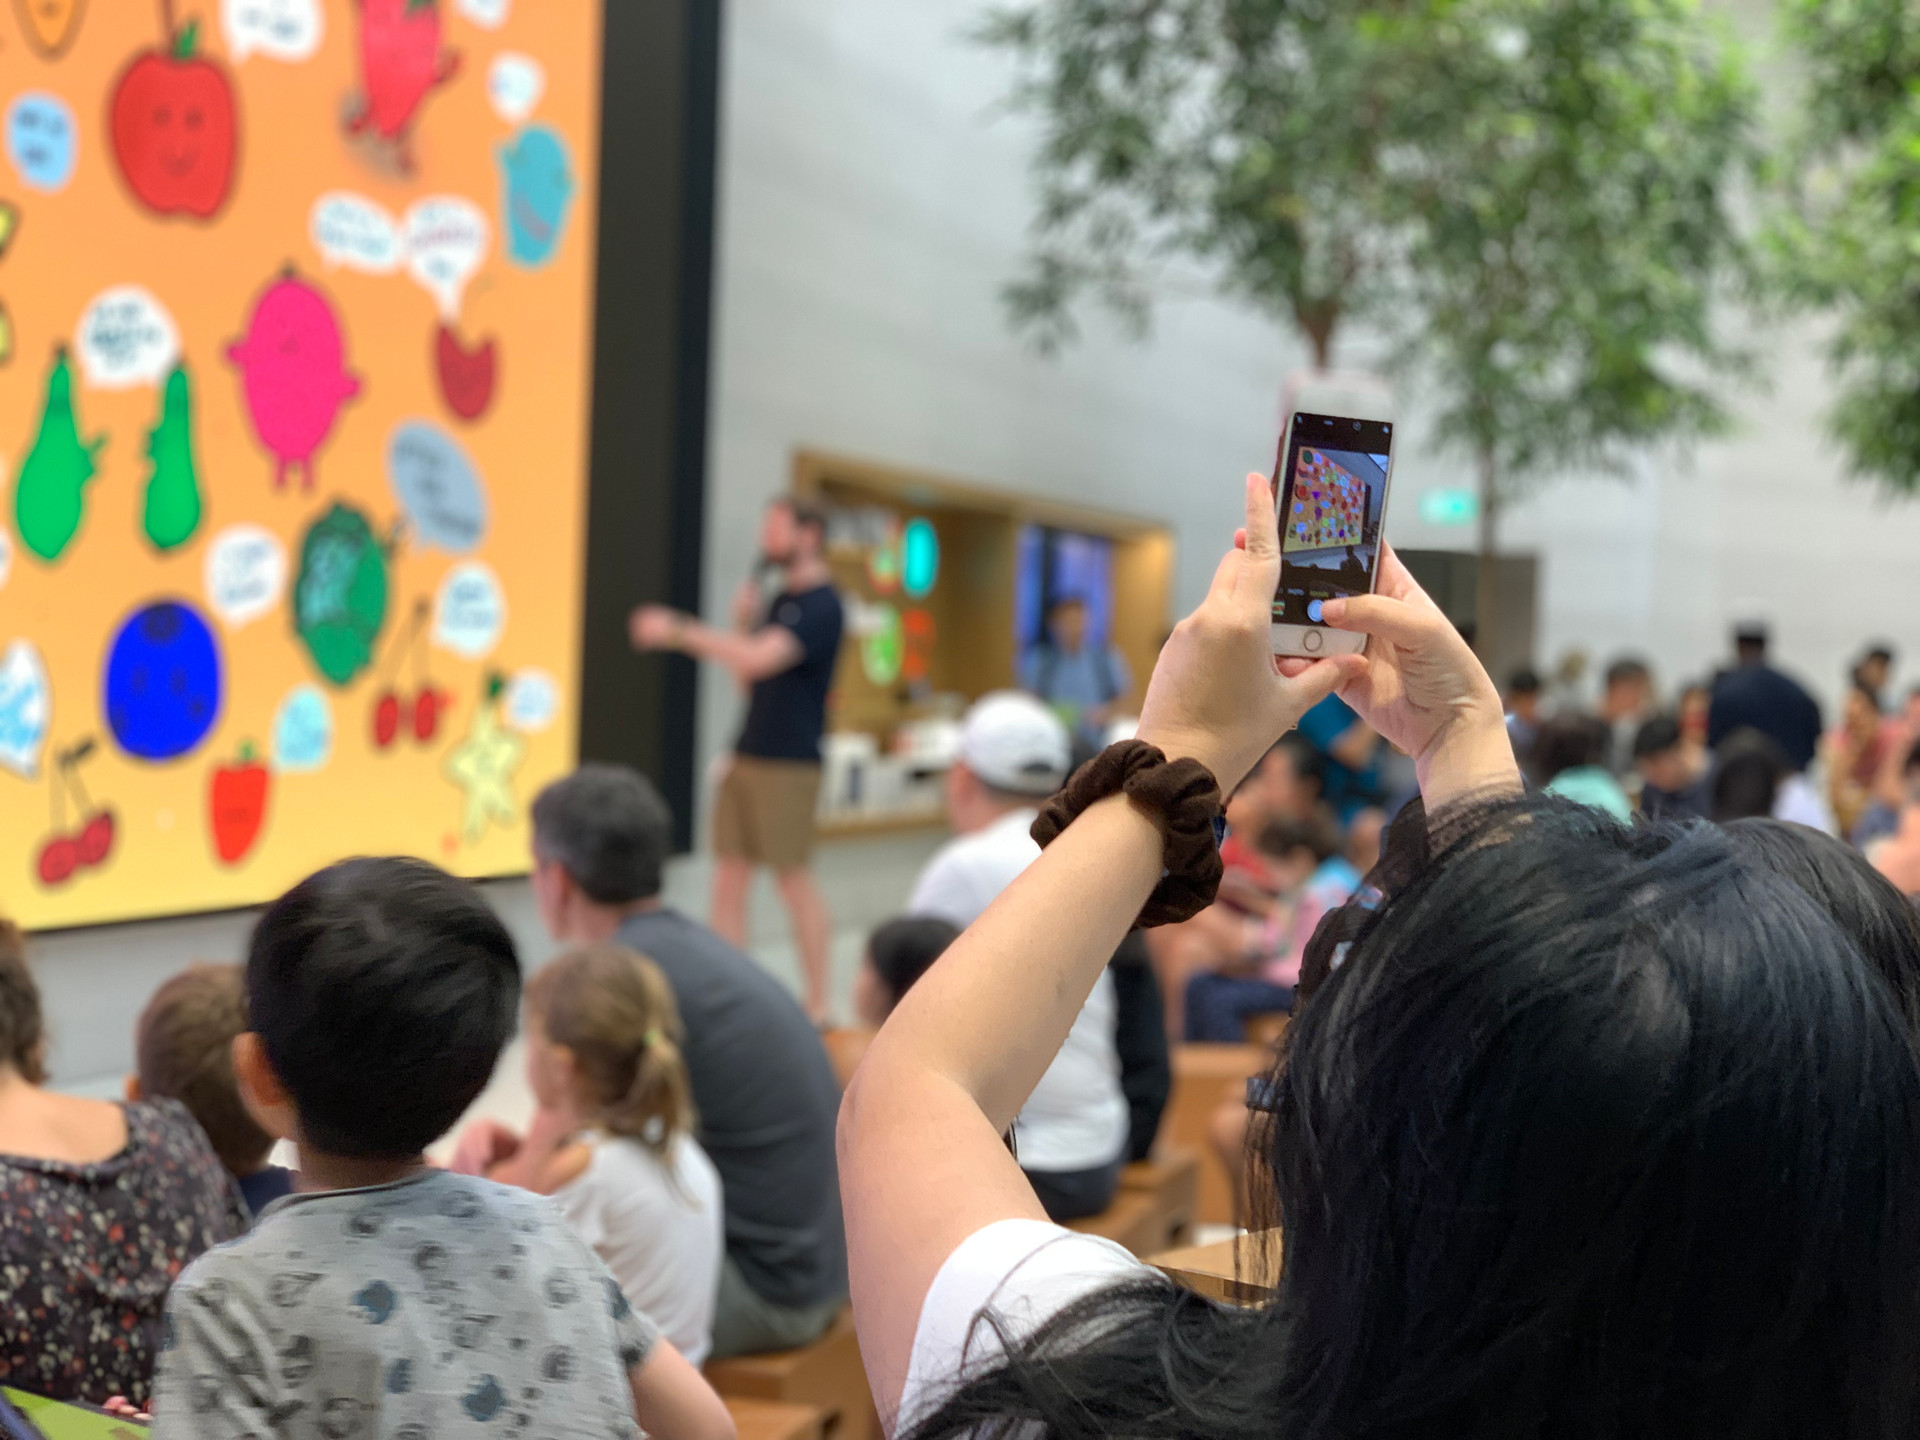 A lady photographing the final artworks on the screen.